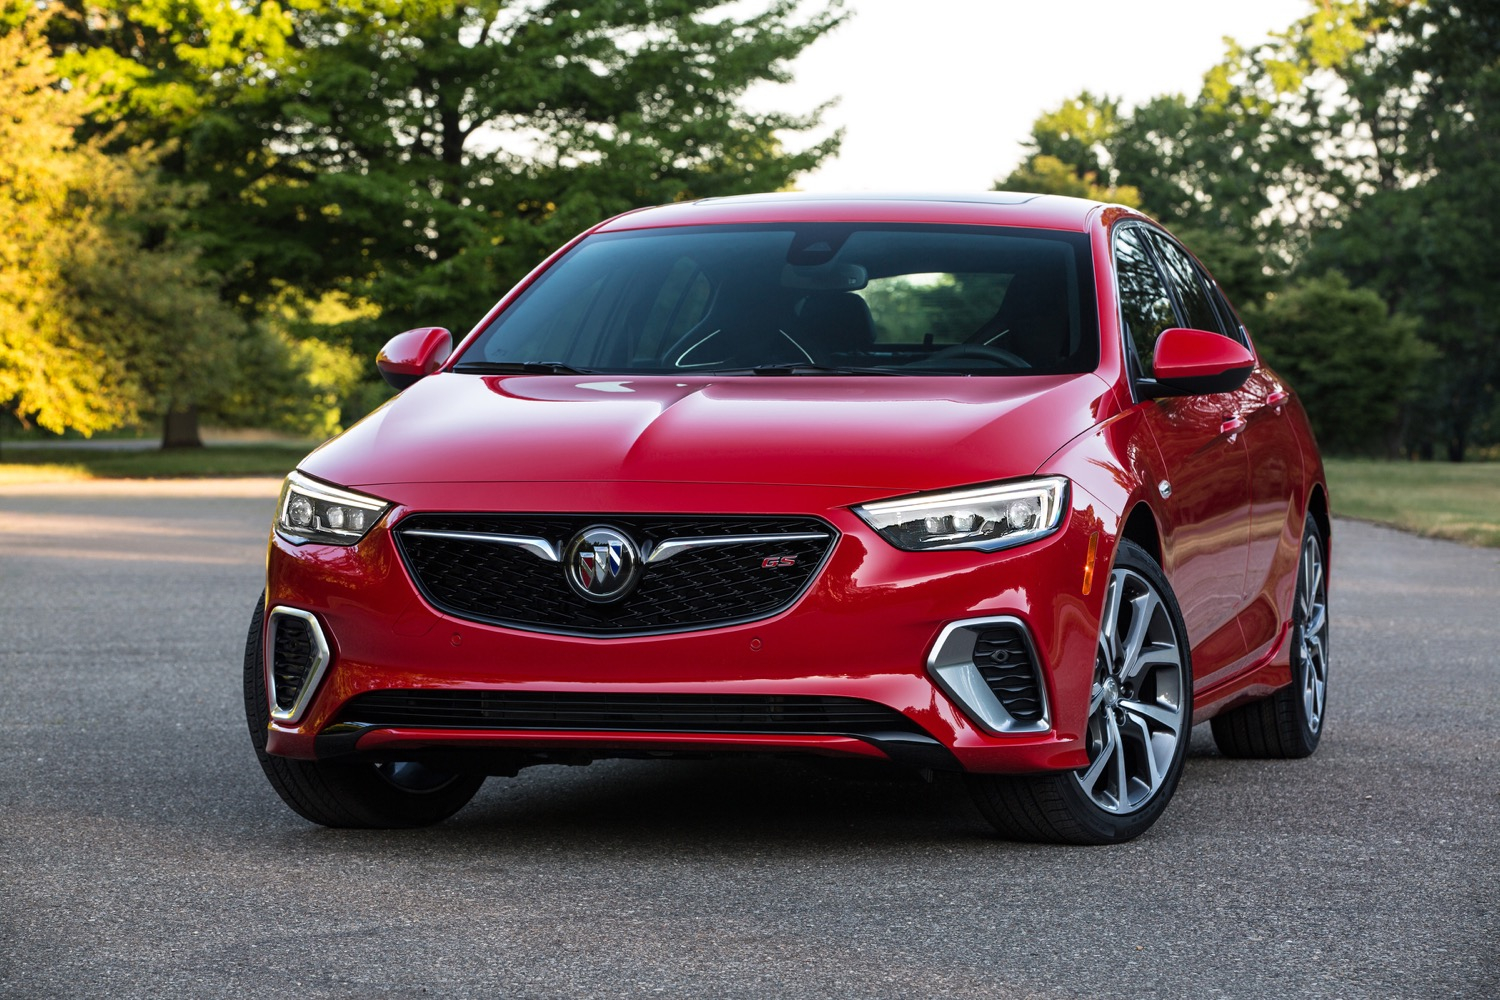 We Have Some Beef With This 2018 Buick Regal Gs Review | Gm 2022 Buick Regal Sportback Specs, Used, 0-60